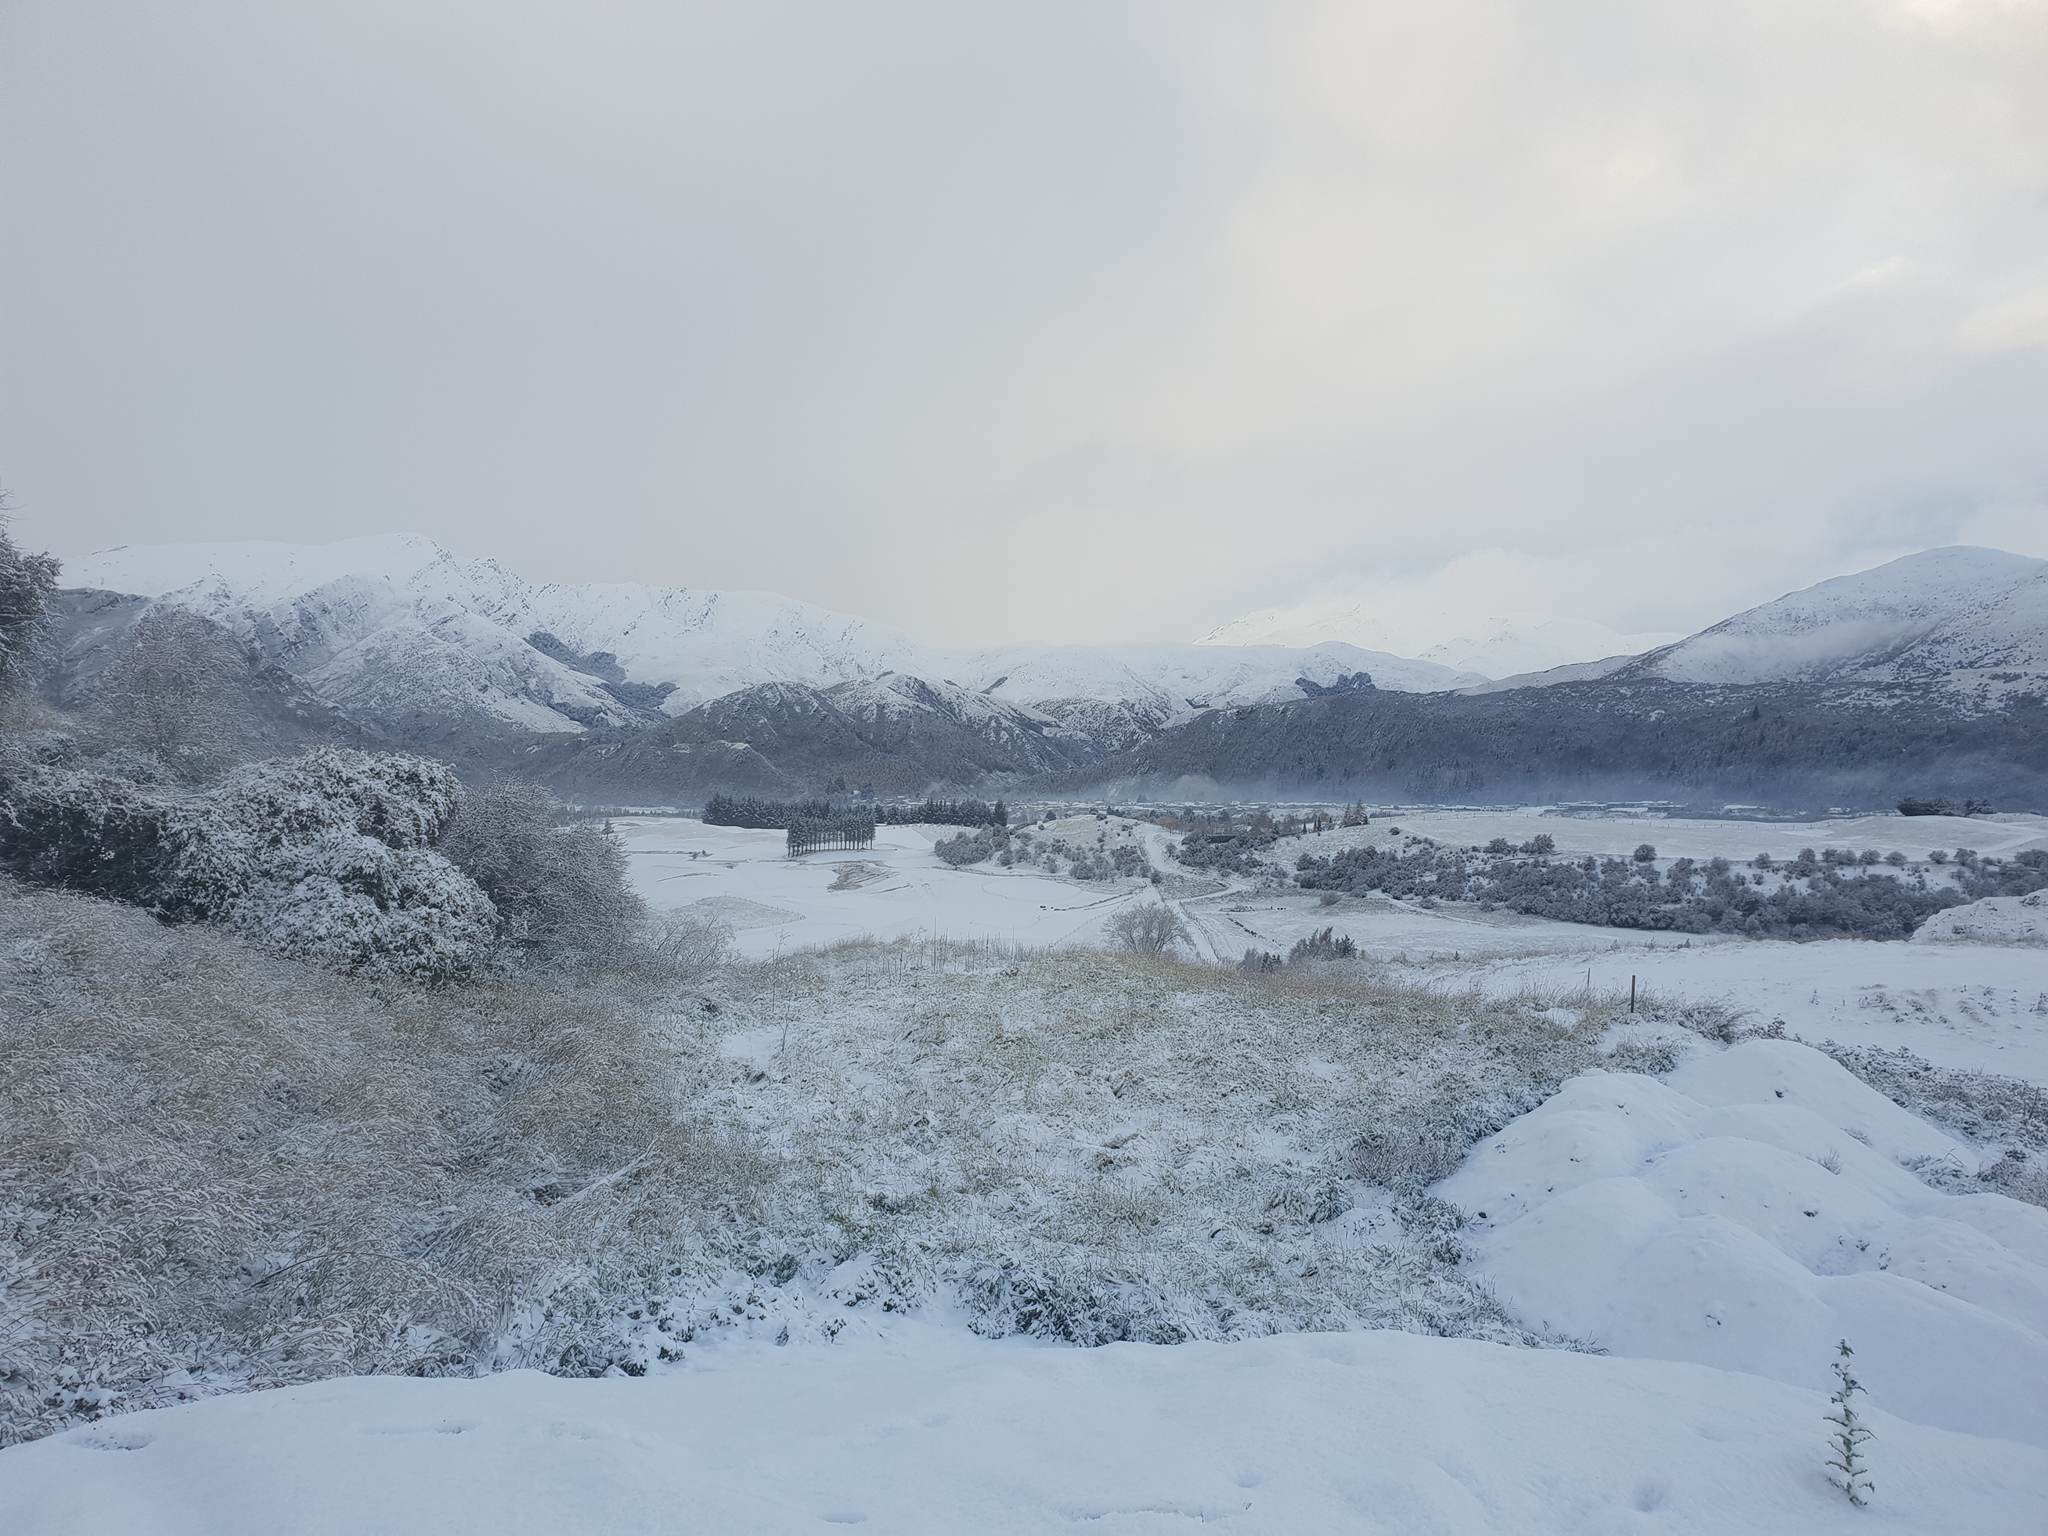 Snow in the Arrowtown area this morning. Photo: James Rolfe